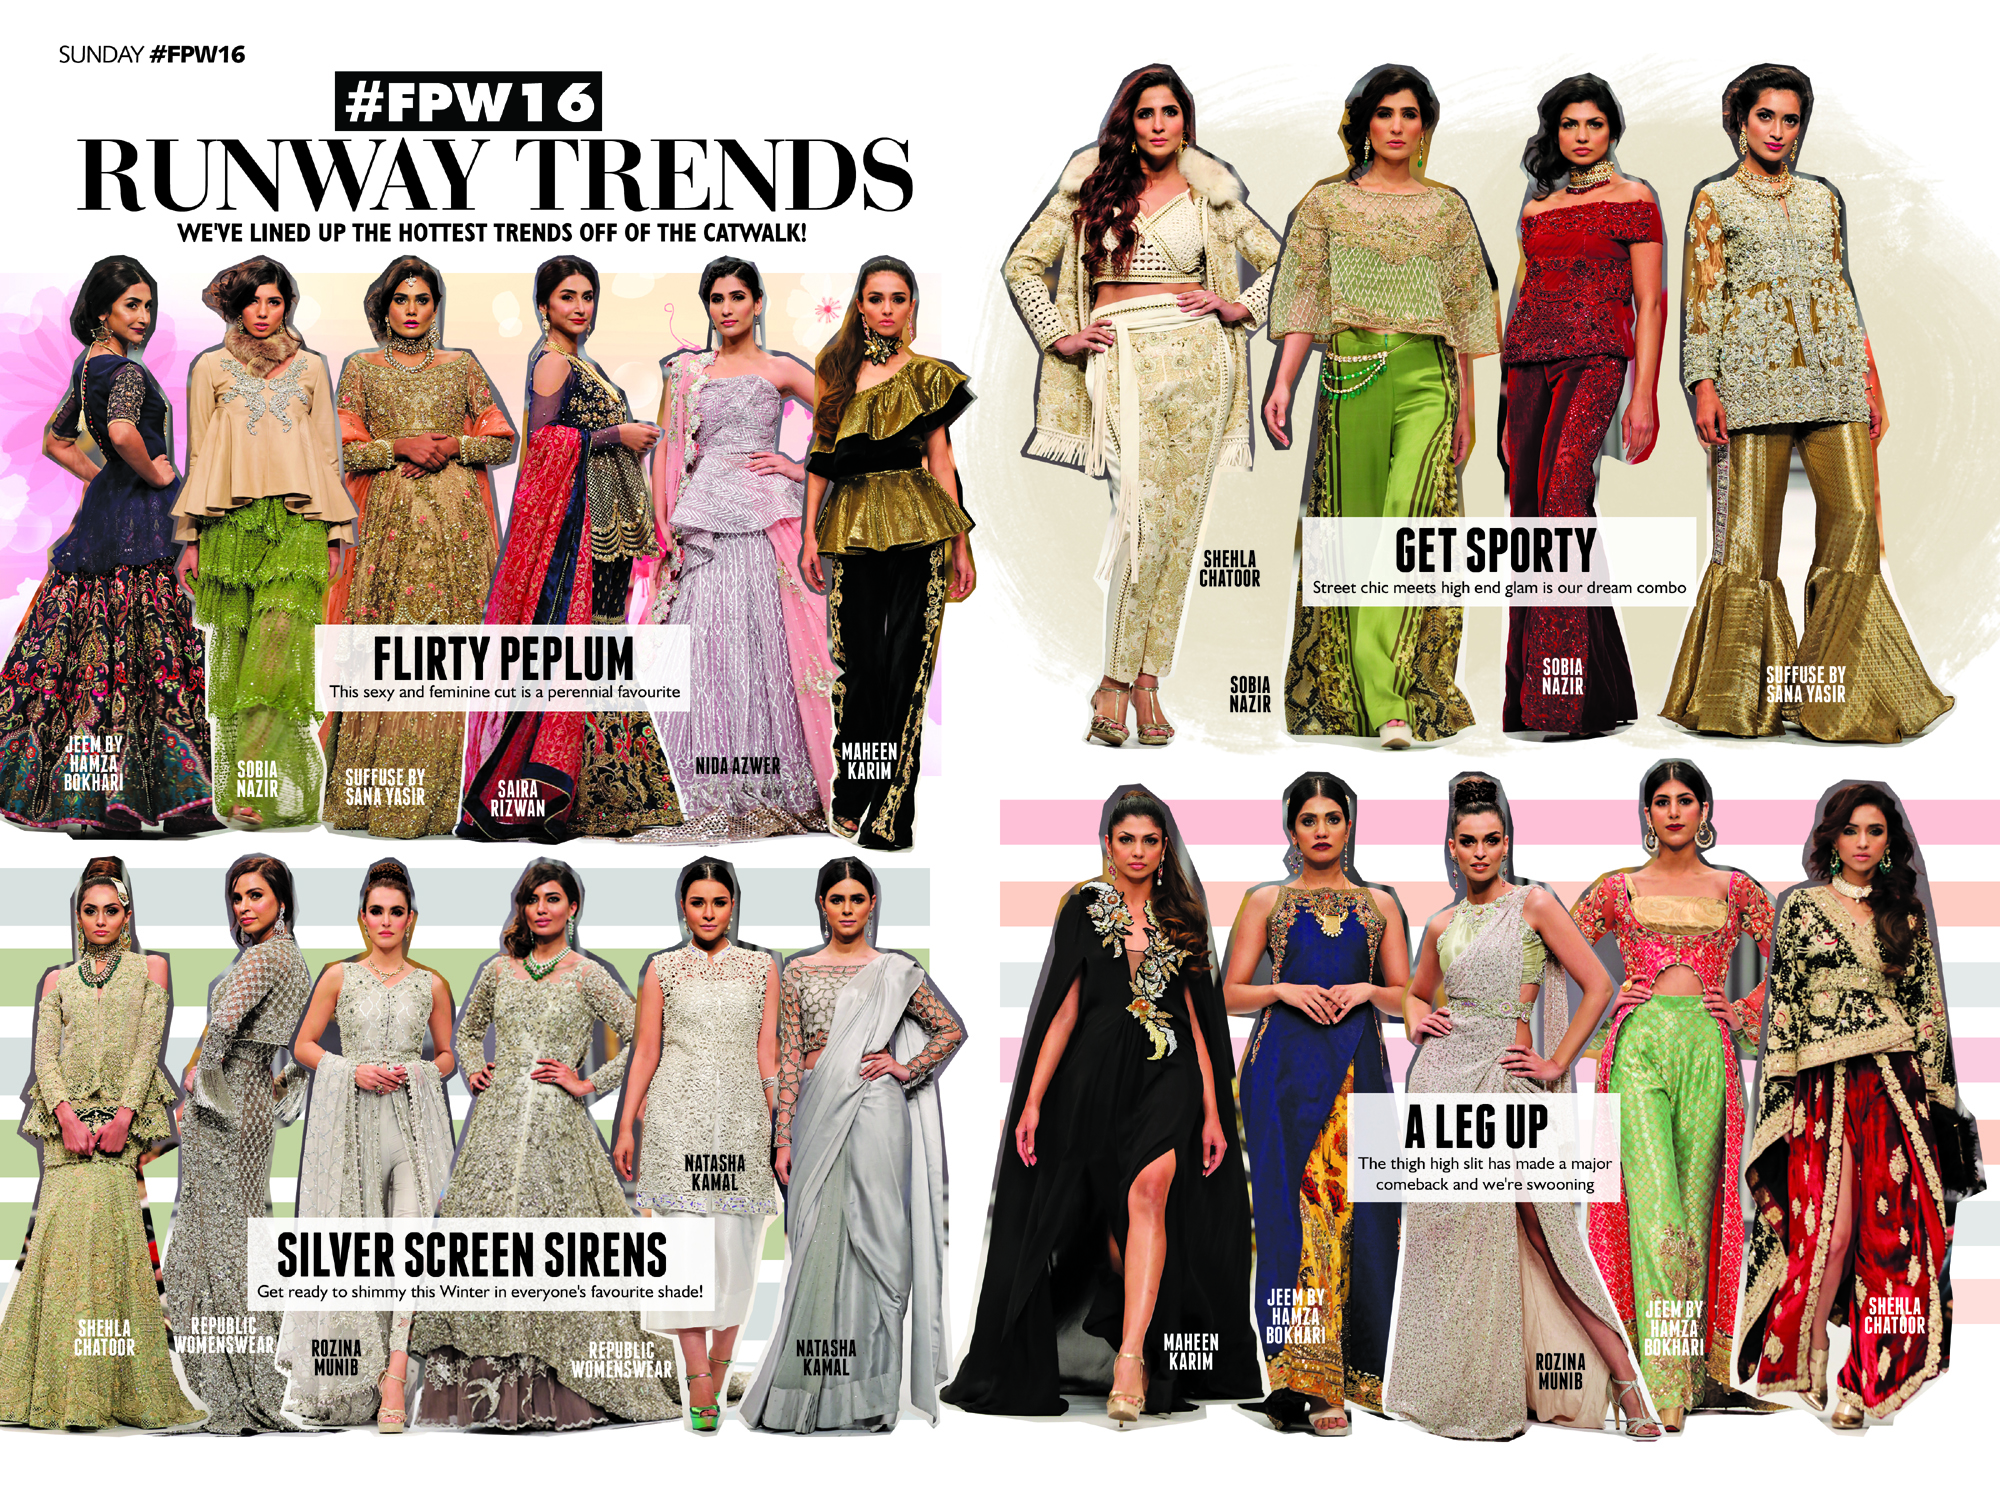 fpw-trends-nov-06-761-1-copy